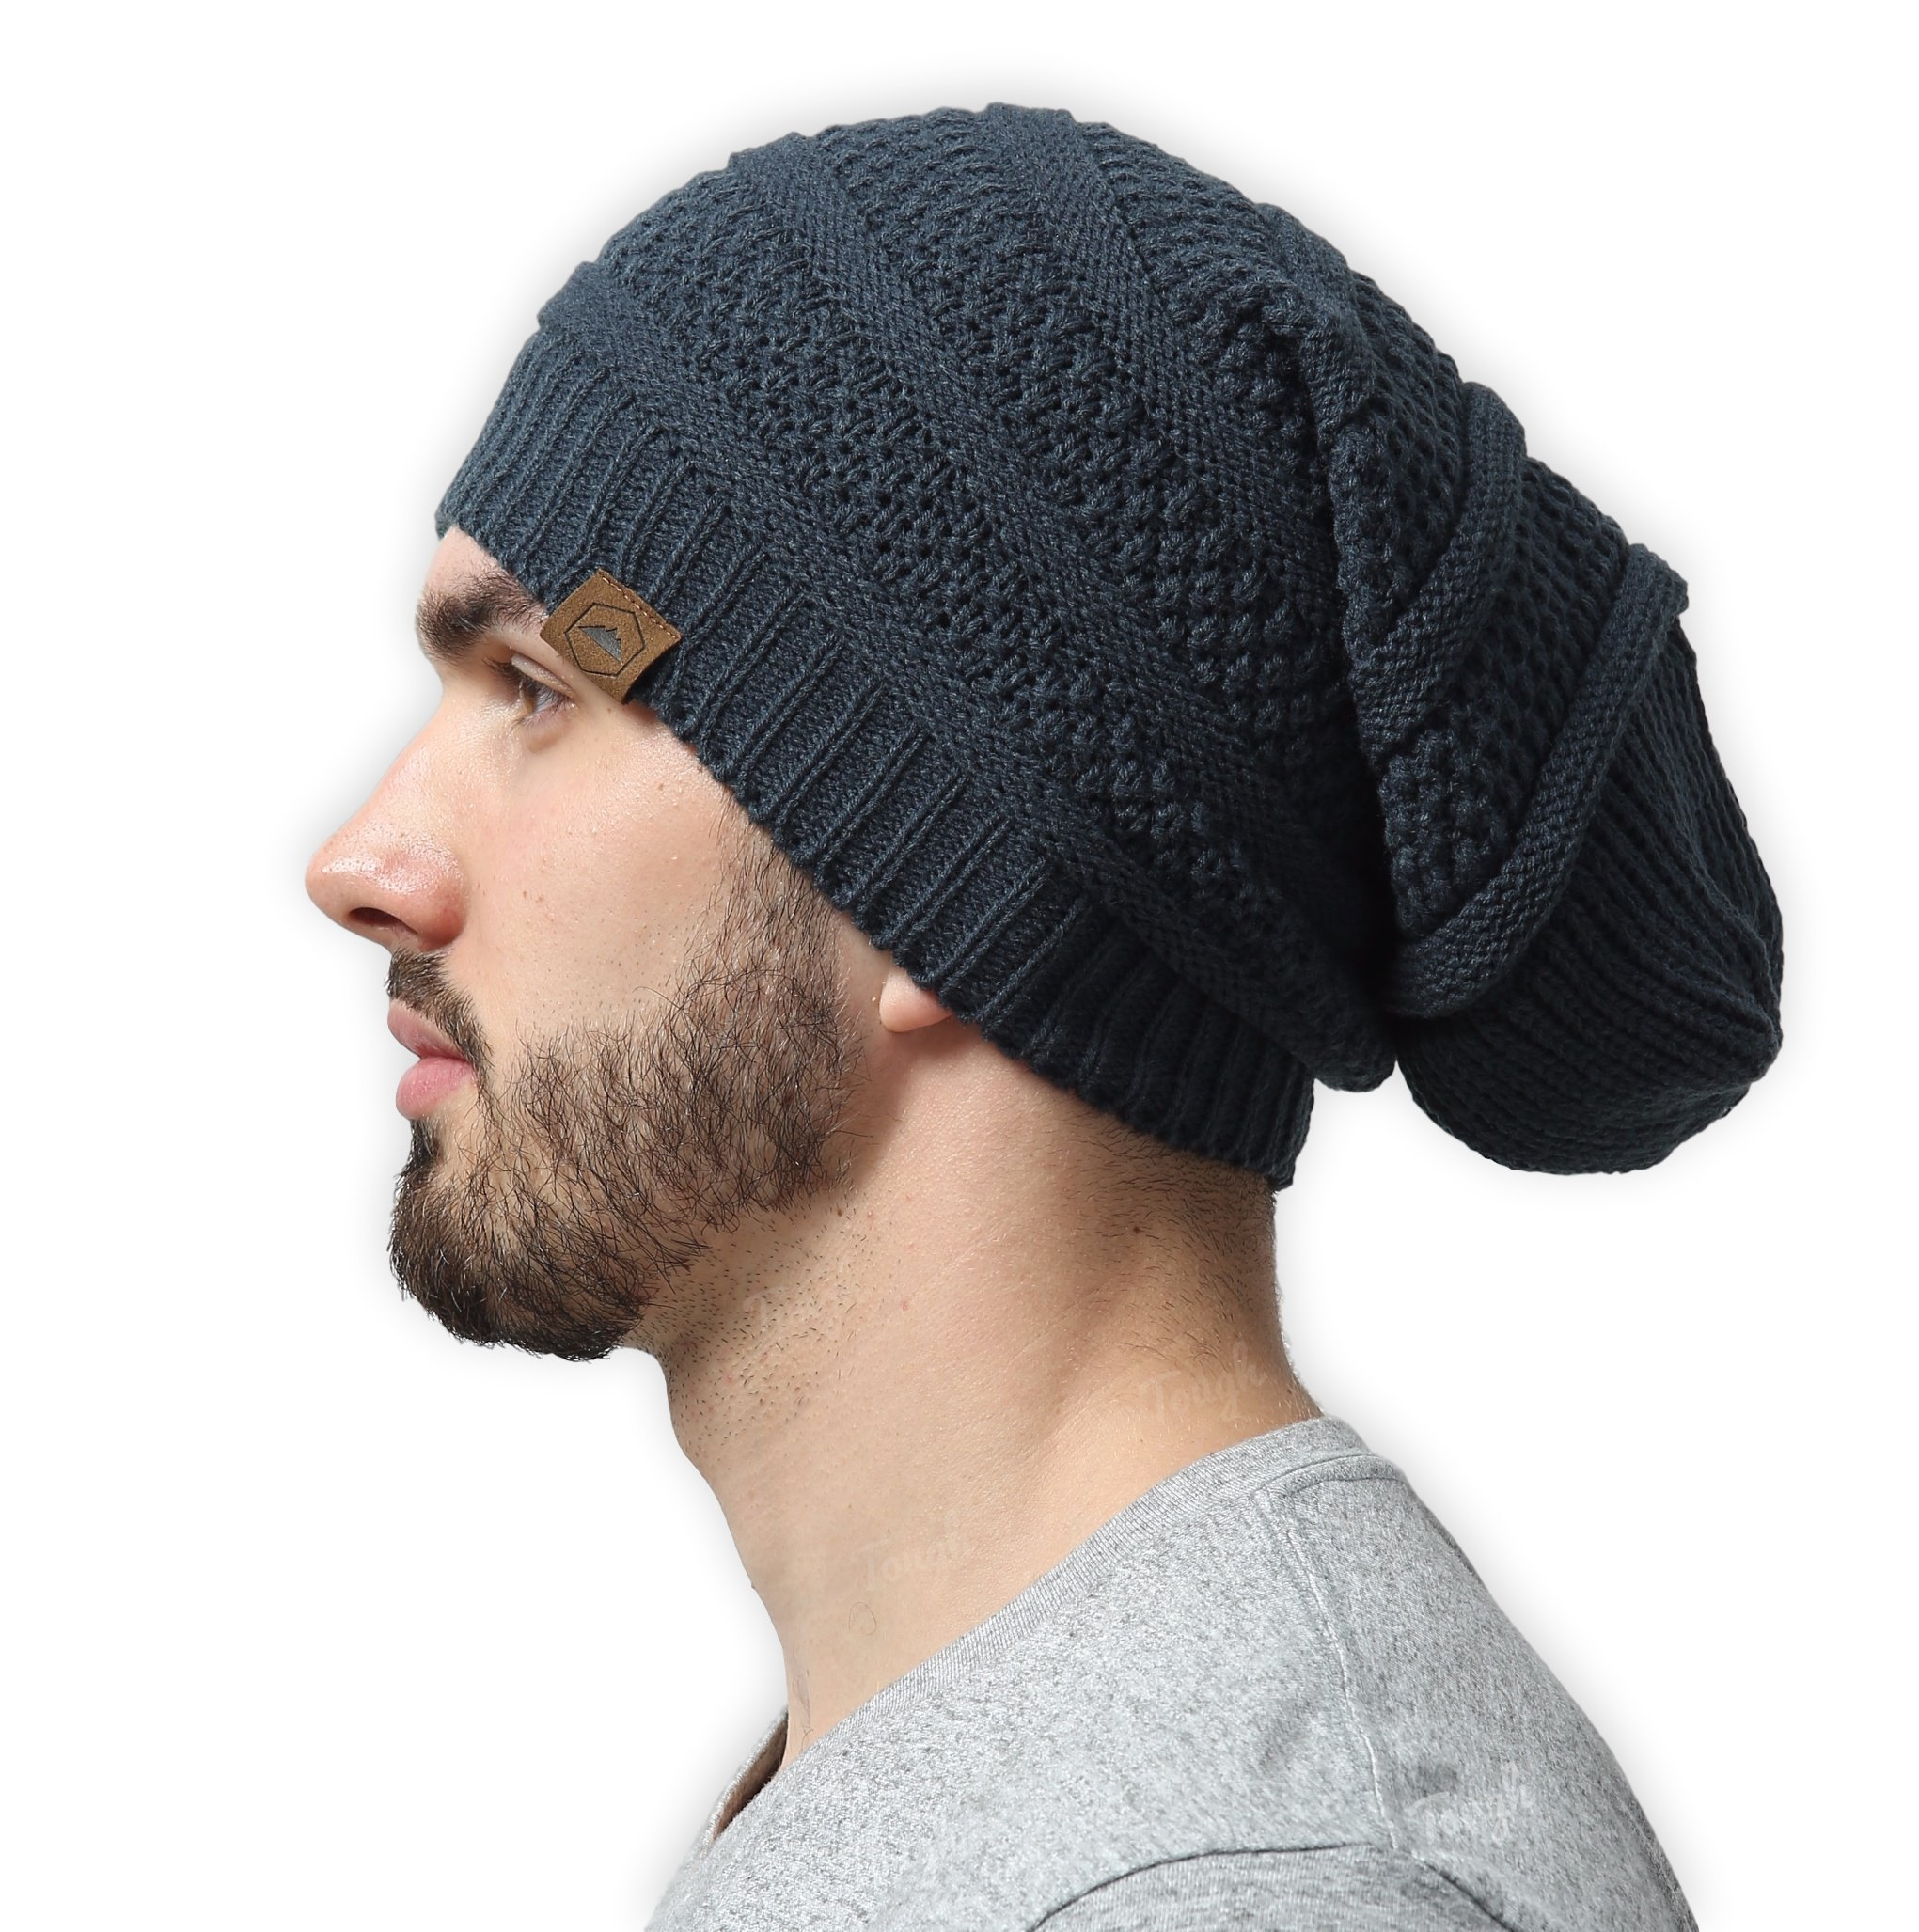 Slouchy Cable Knit Beanie - Chunky, Oversized Slouch Beanie Hats for Men & Women - Stay Warm & Stylish - Serious Beanies for Serious Style by Tough Headwear